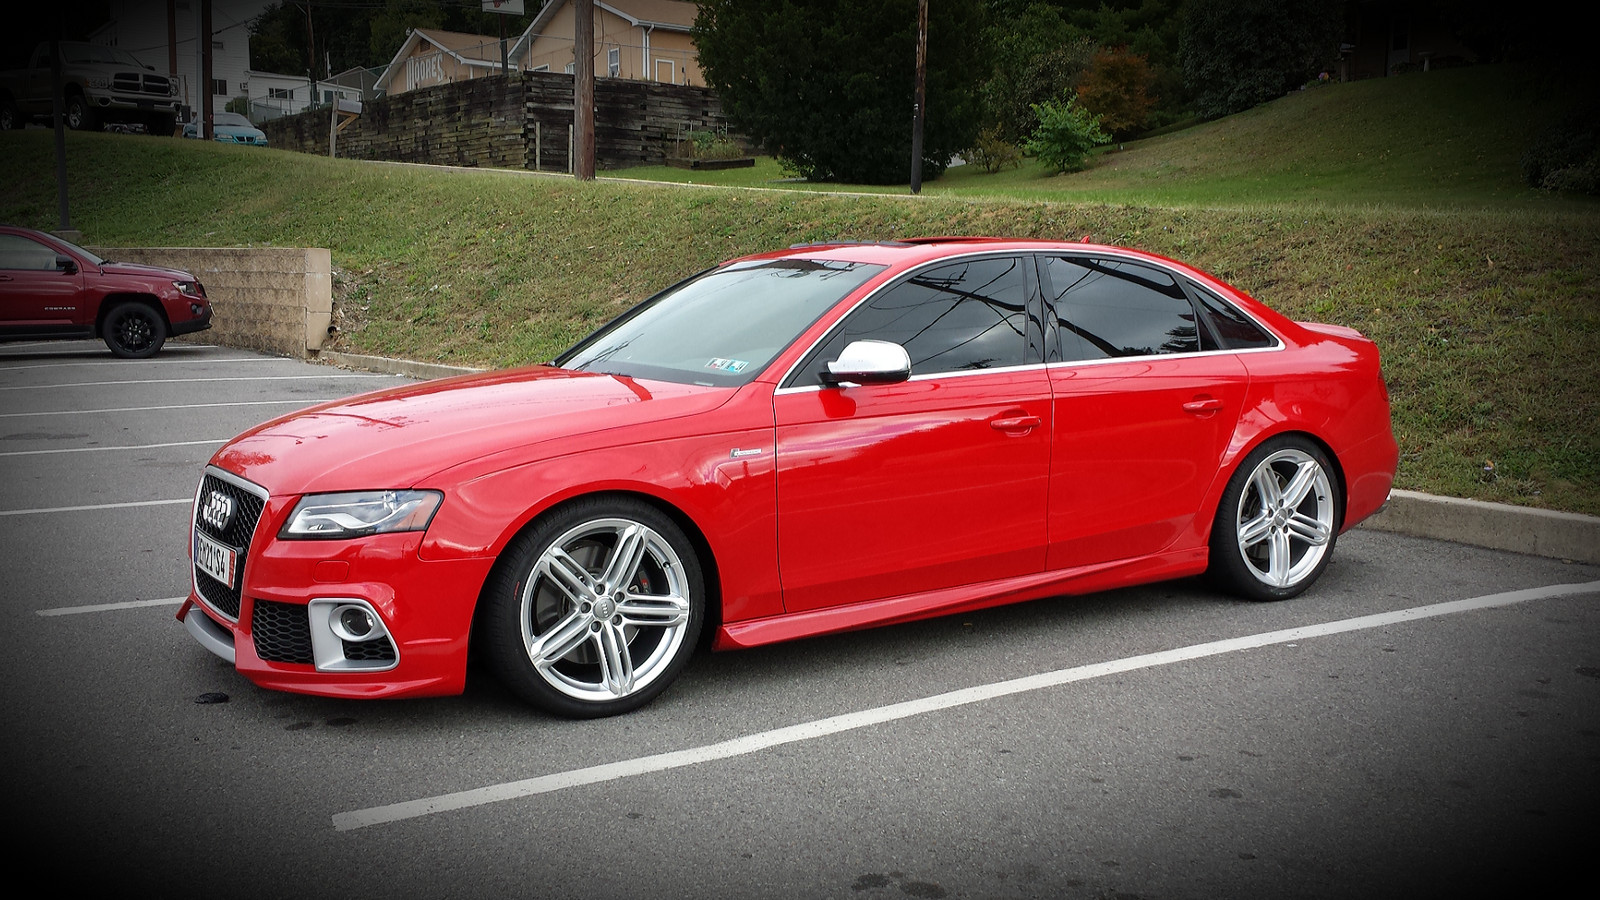 2011 Brilliant Red Audi S4 Pictures Mods Upgrades